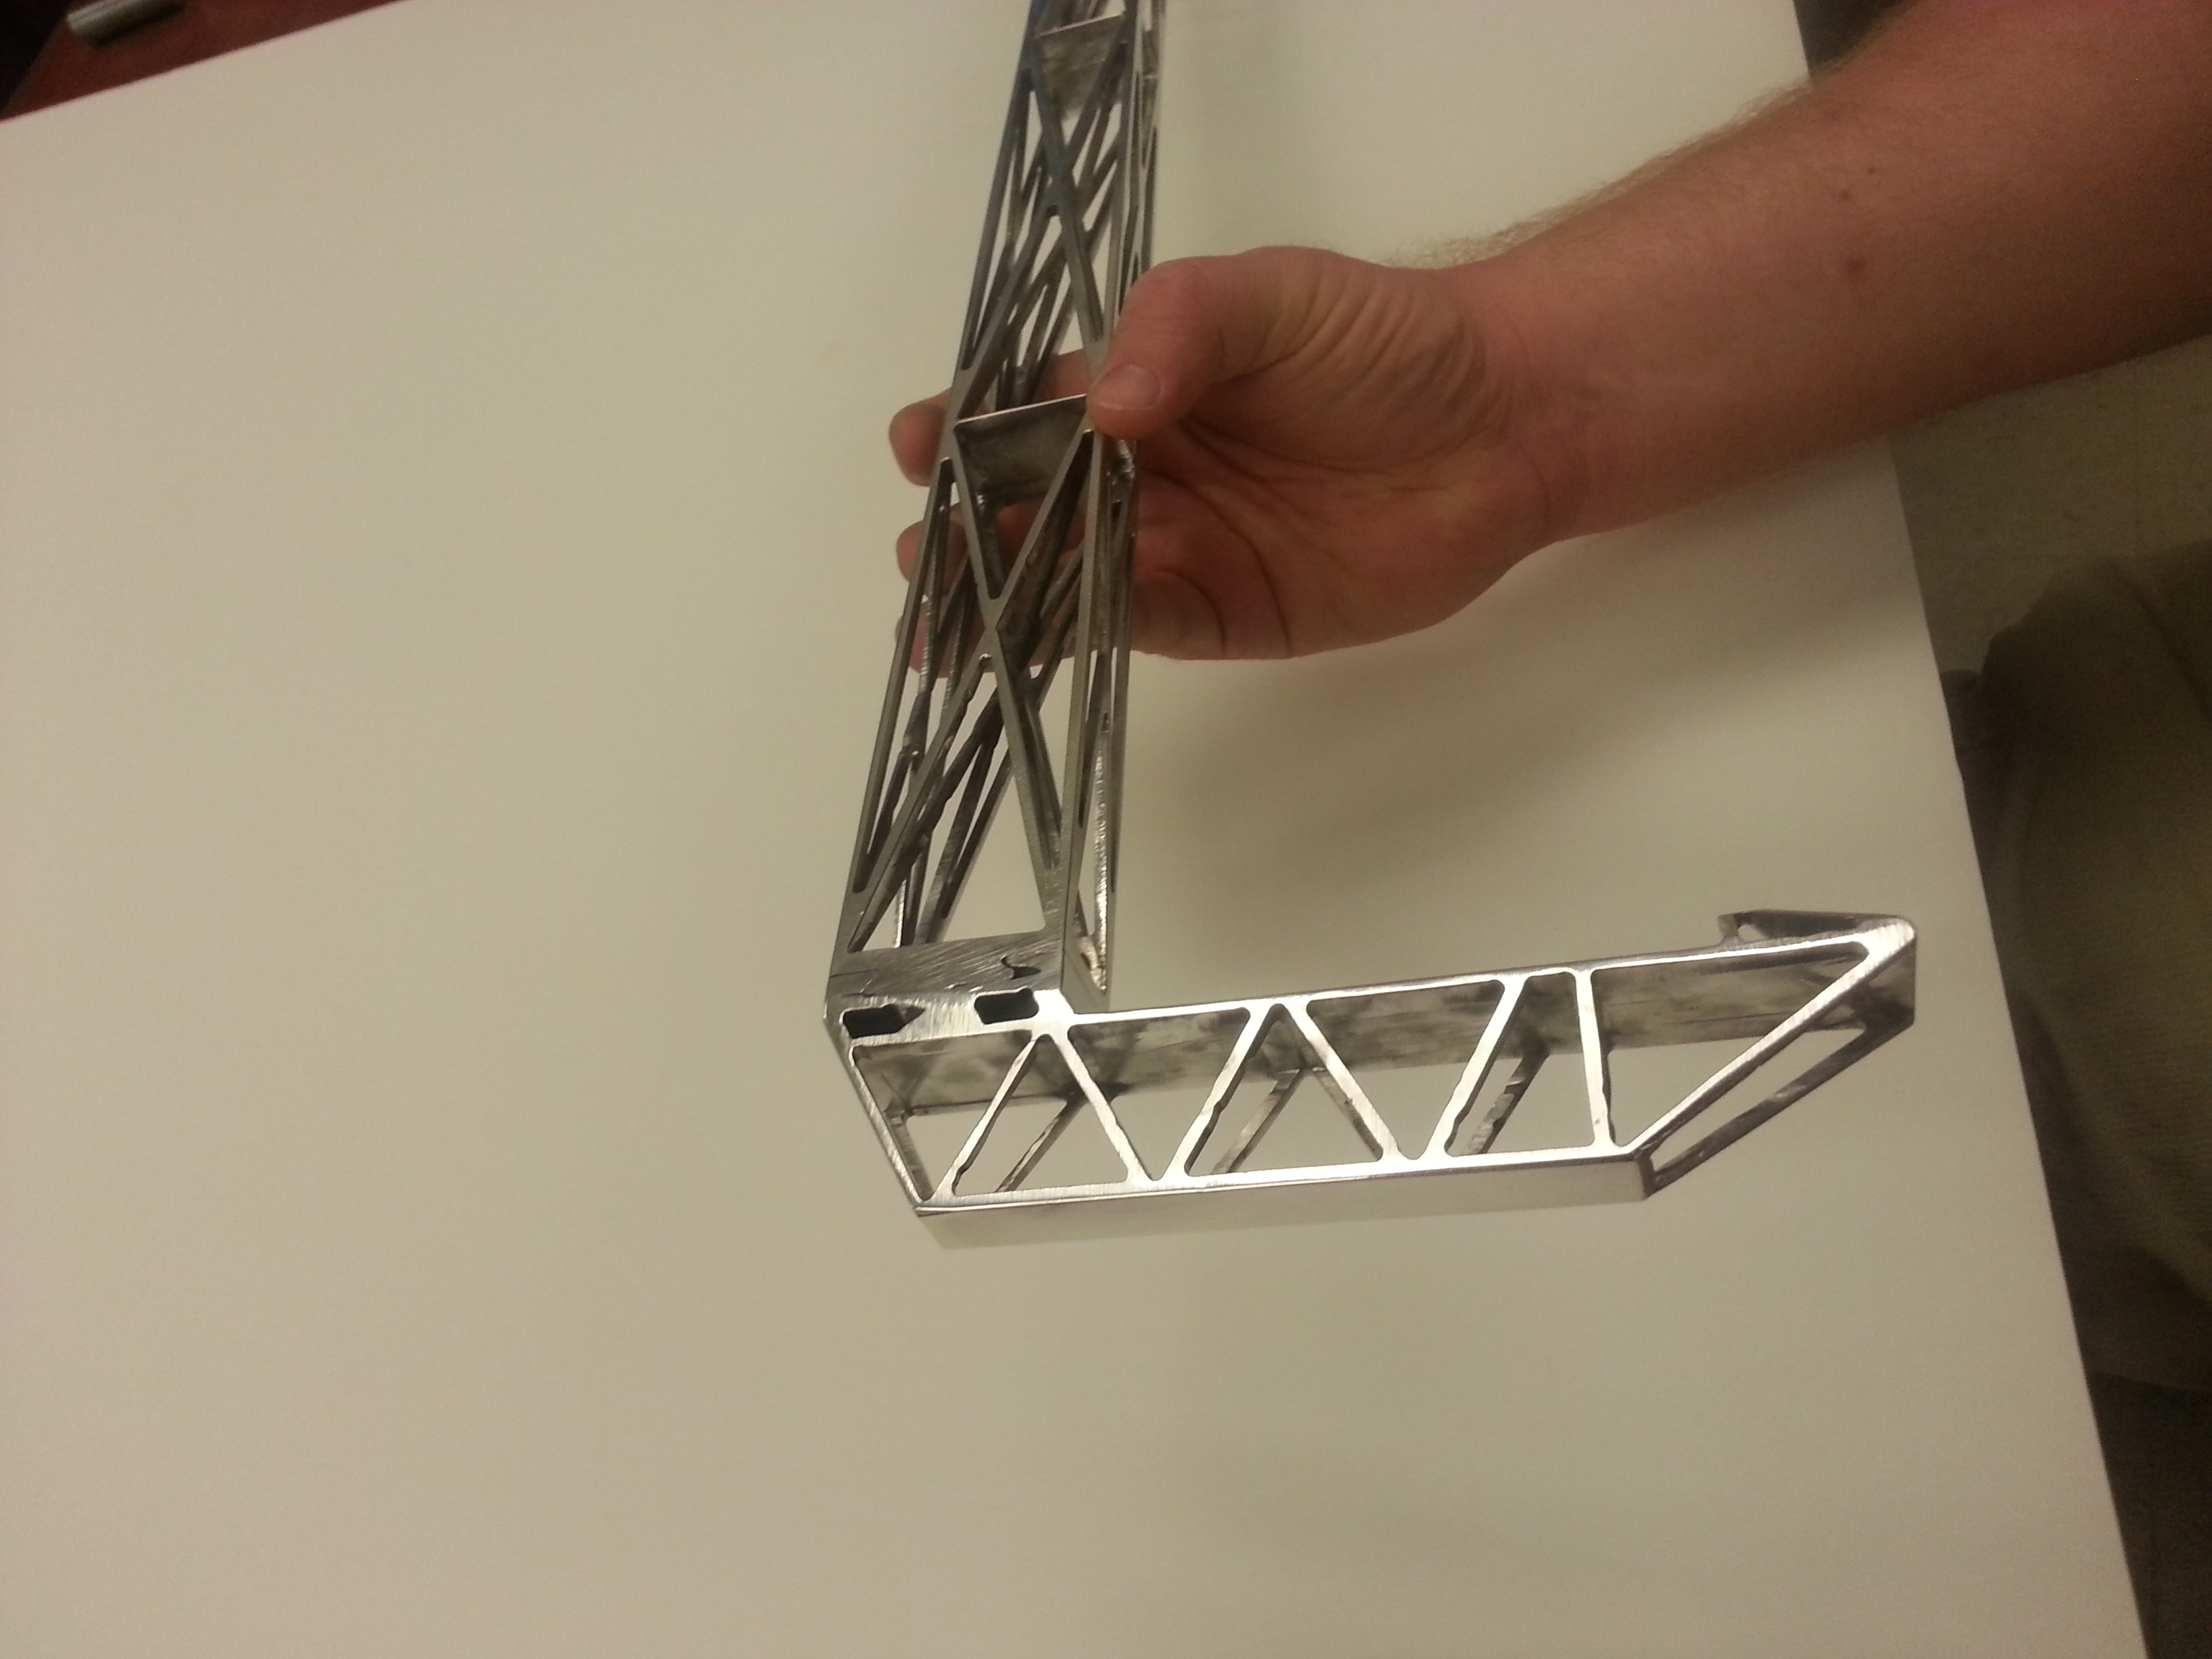 Space Frame Cane (prior to anodizing) « Meiswinkel Automata